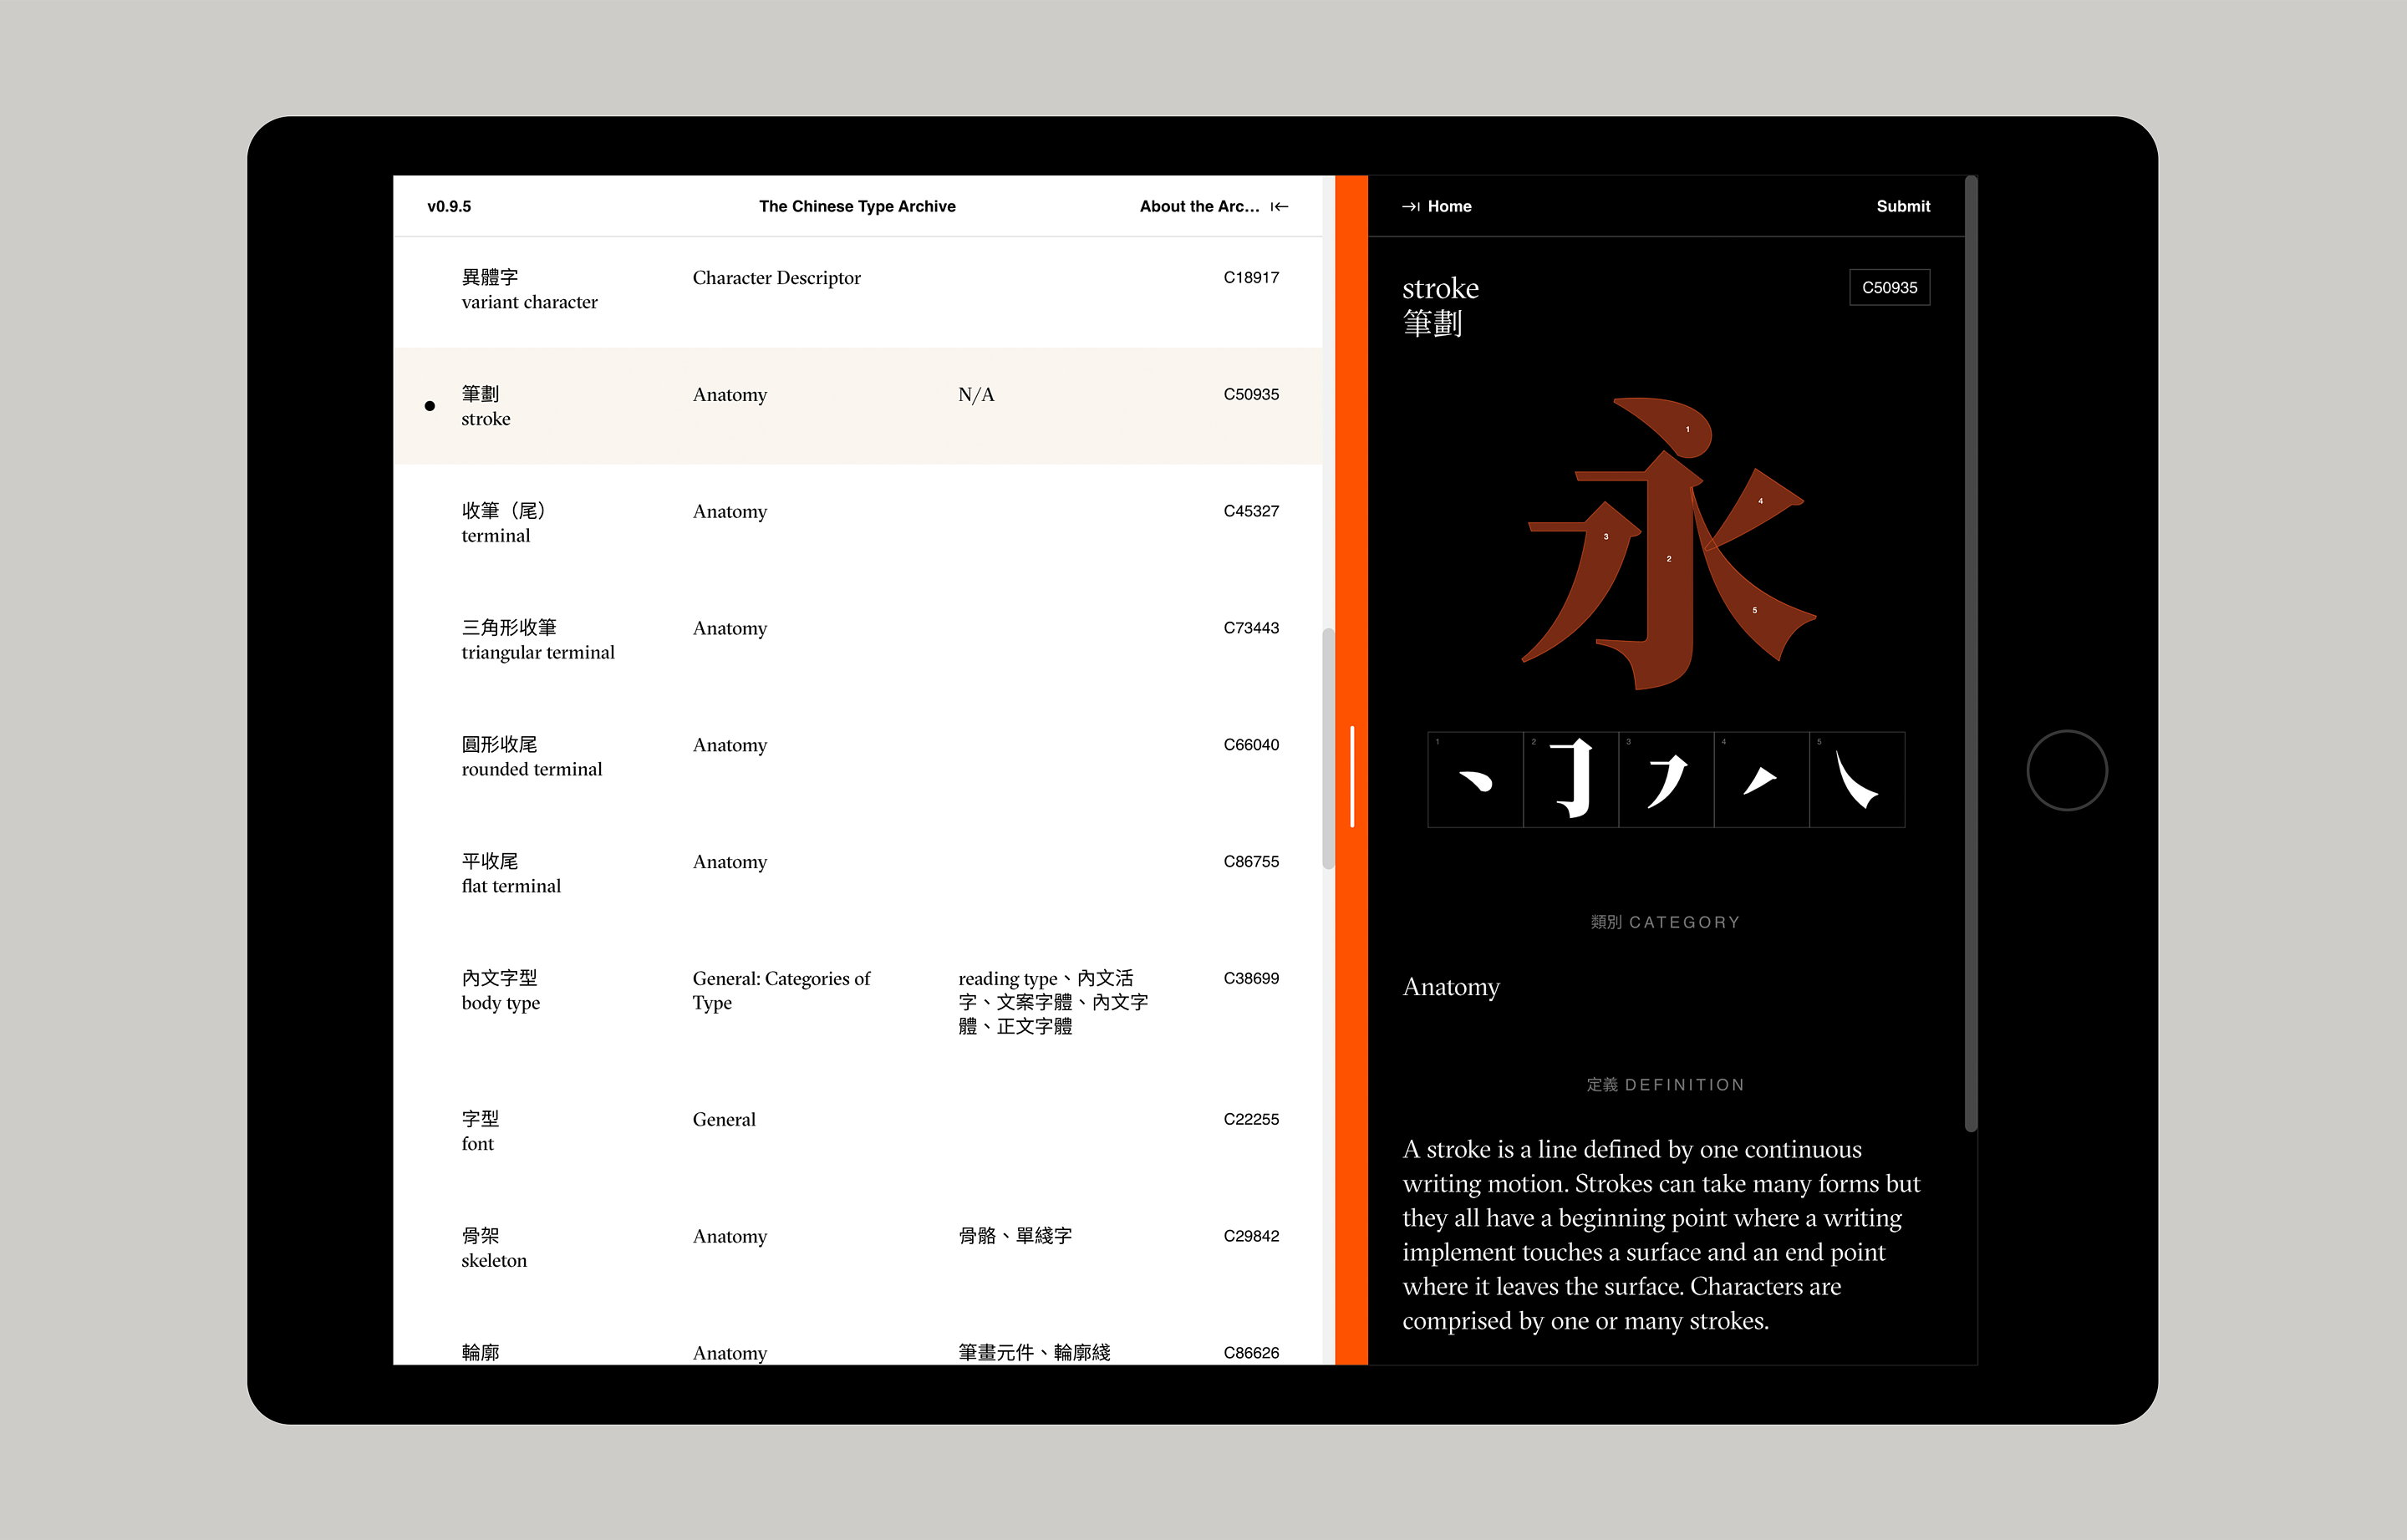 Chinese Type Archive